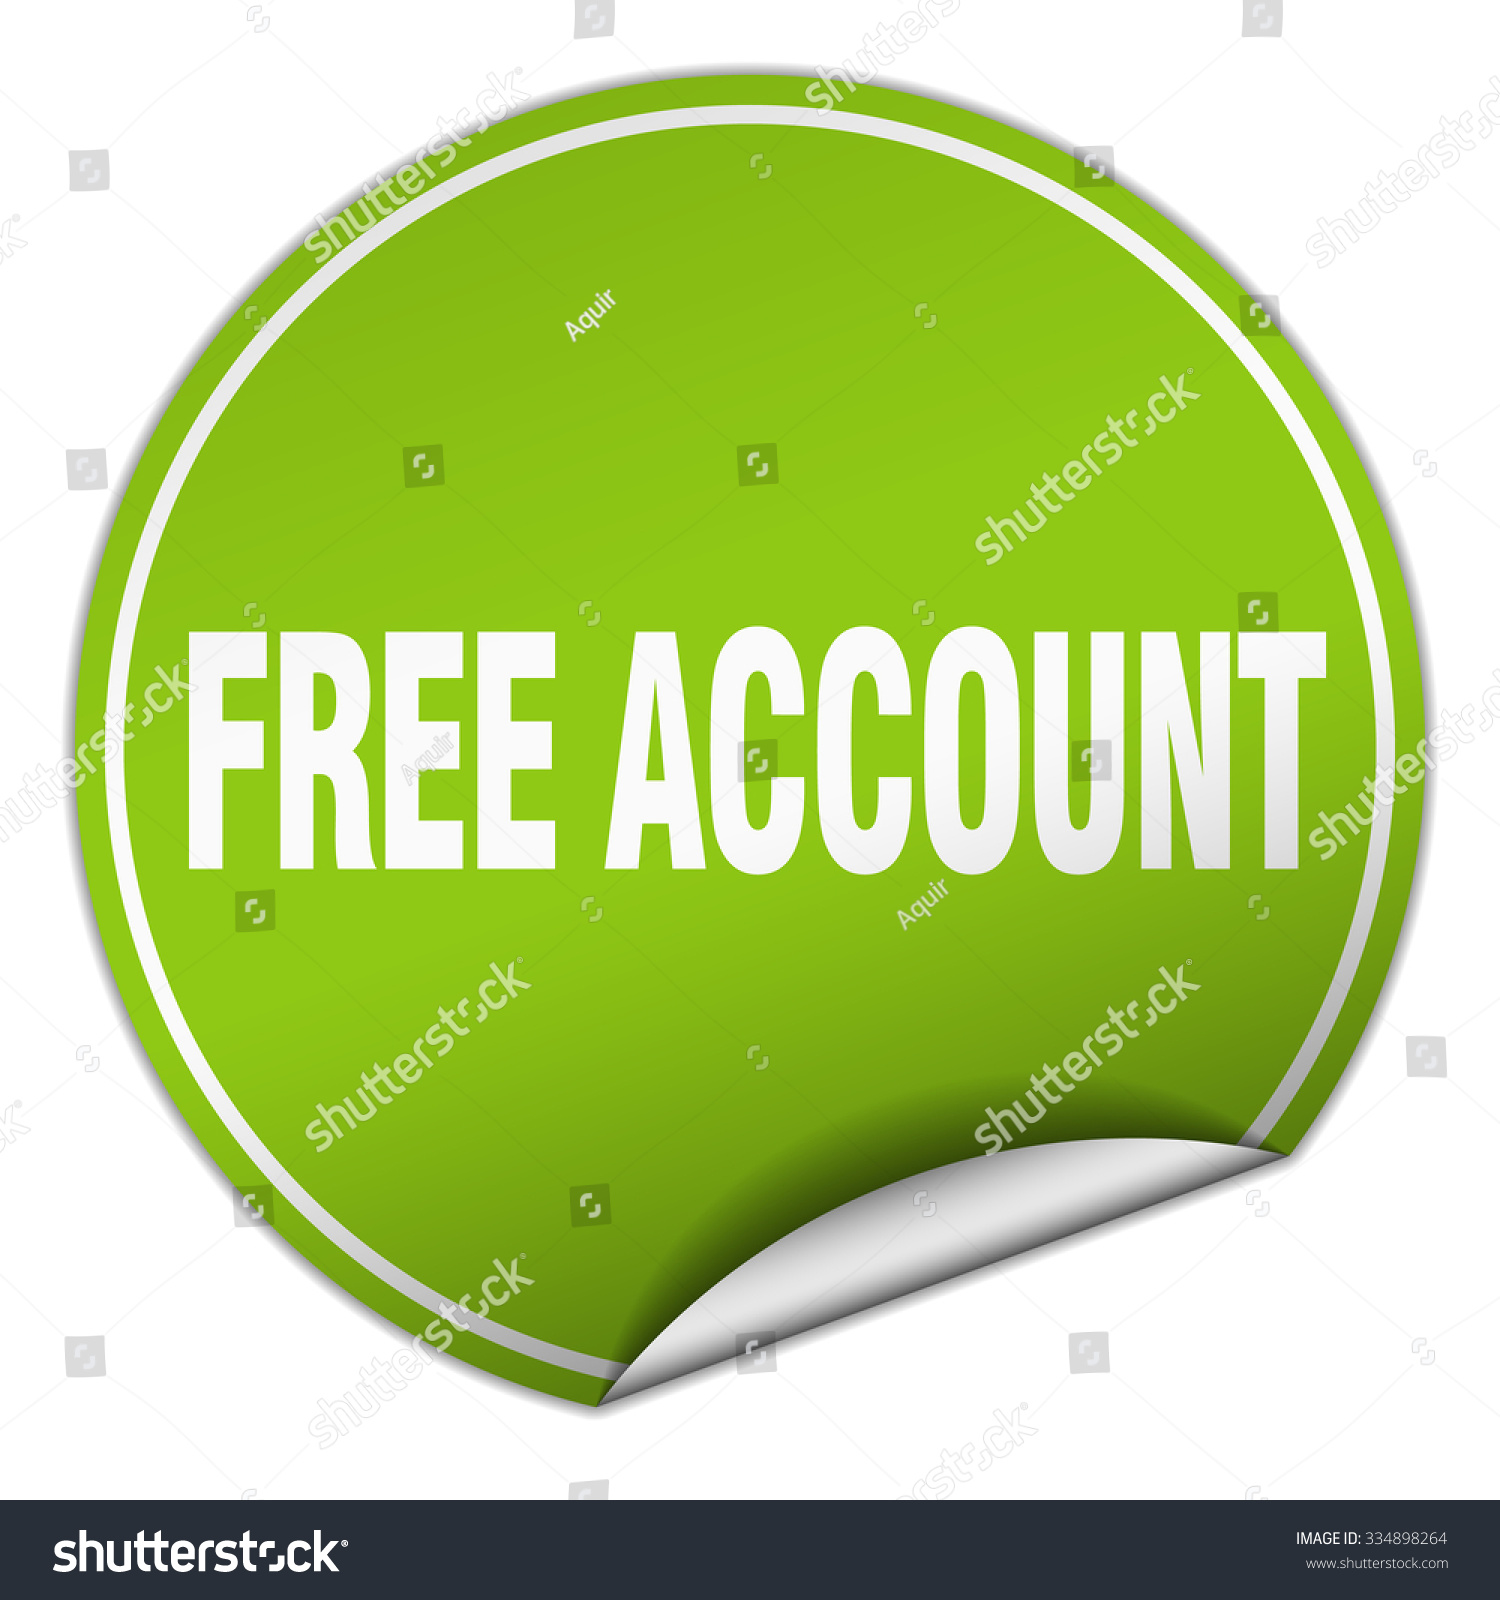 free account round green sticker isolated stock vector hd royalty